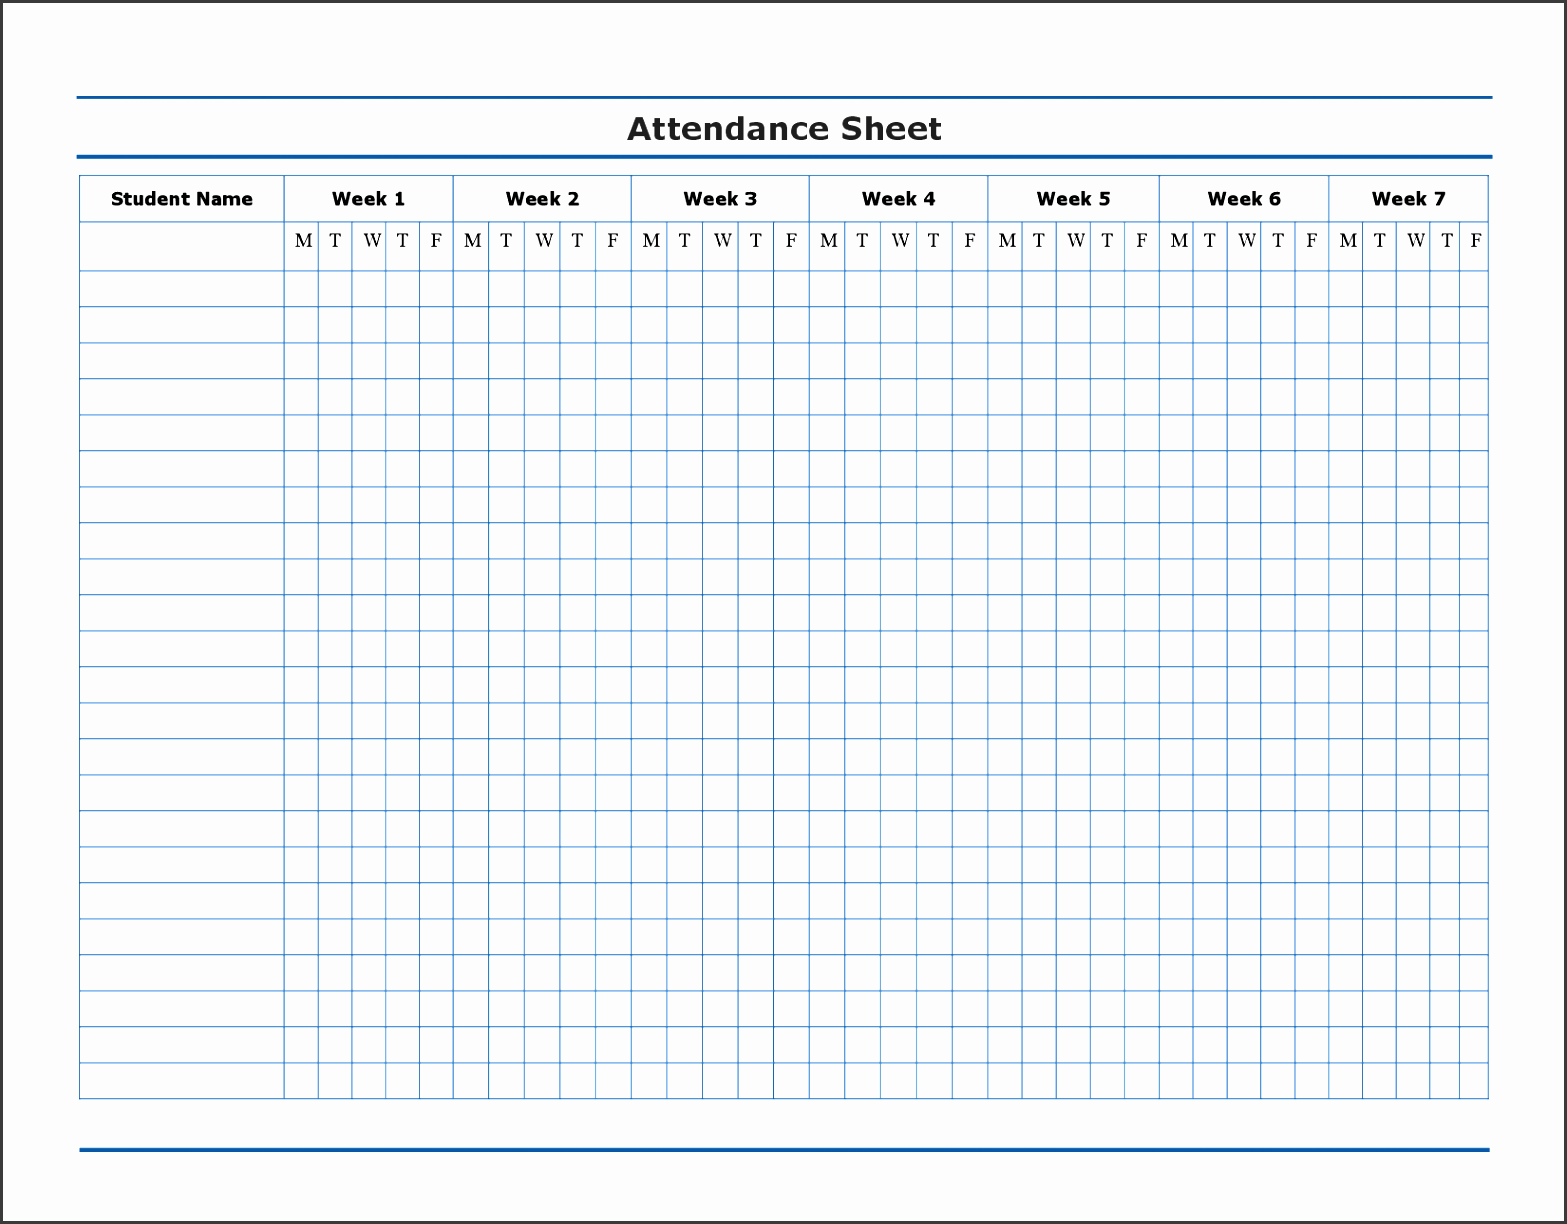 uncategorized efficient attendance sheet template for classroom with student record in 7 weeks